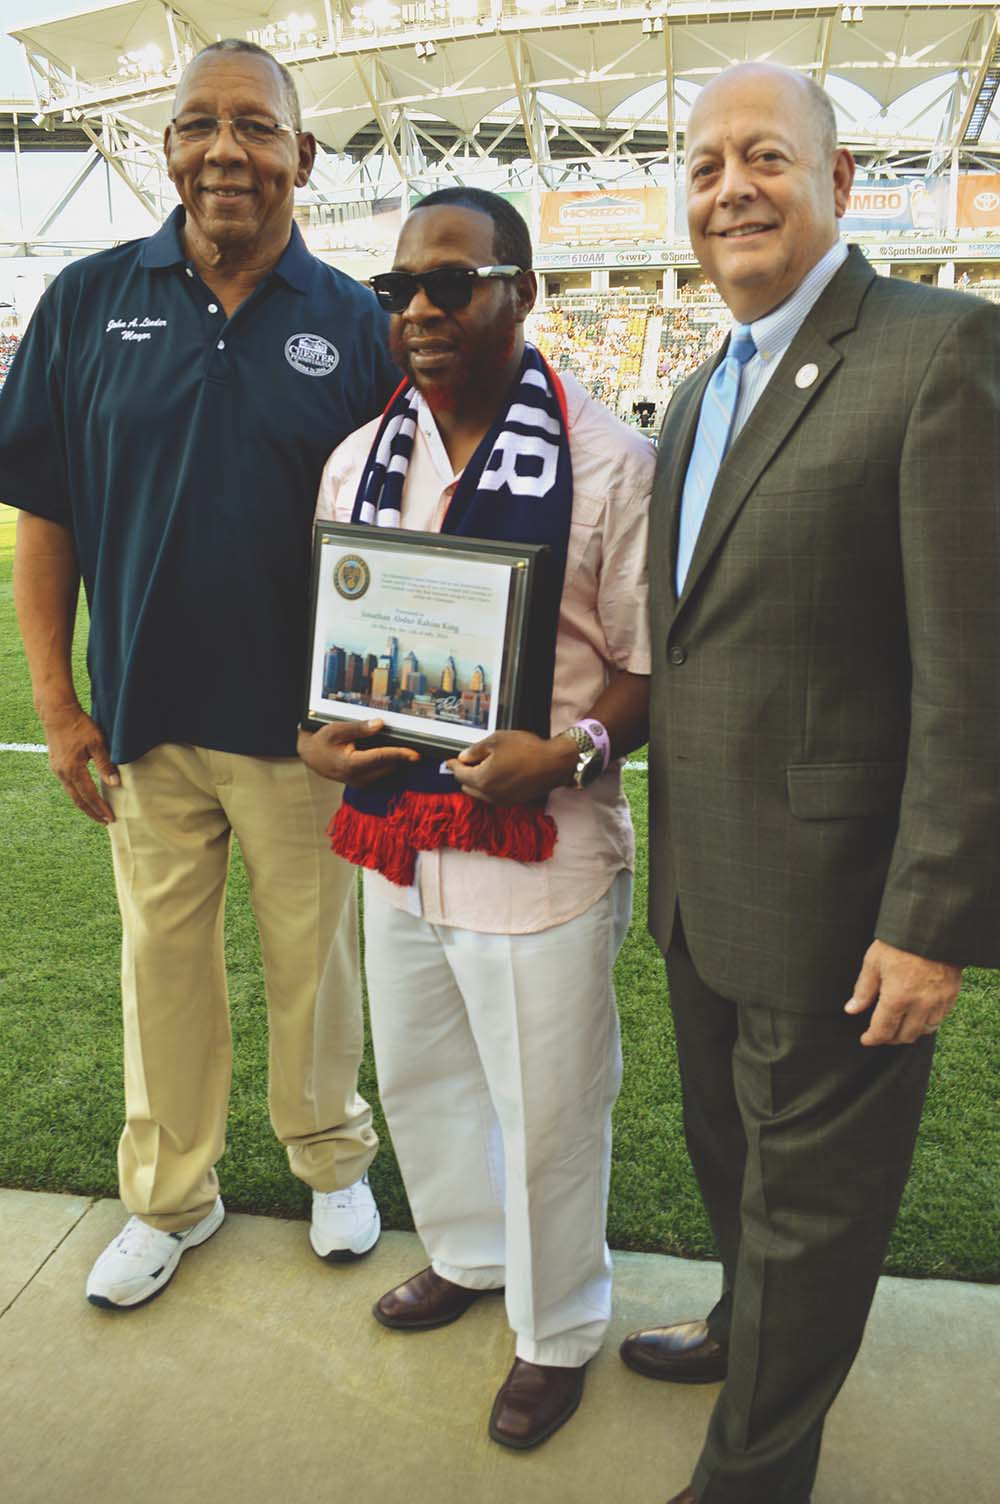 Chester Mayor John Linder (left) and Rick Jacobs, PPL Park's vice president of community affairs (right), flank and congratulate Chester community liaison and longtime activist Jonathan Abdur-Rahim King for being named a Hometown Hero.